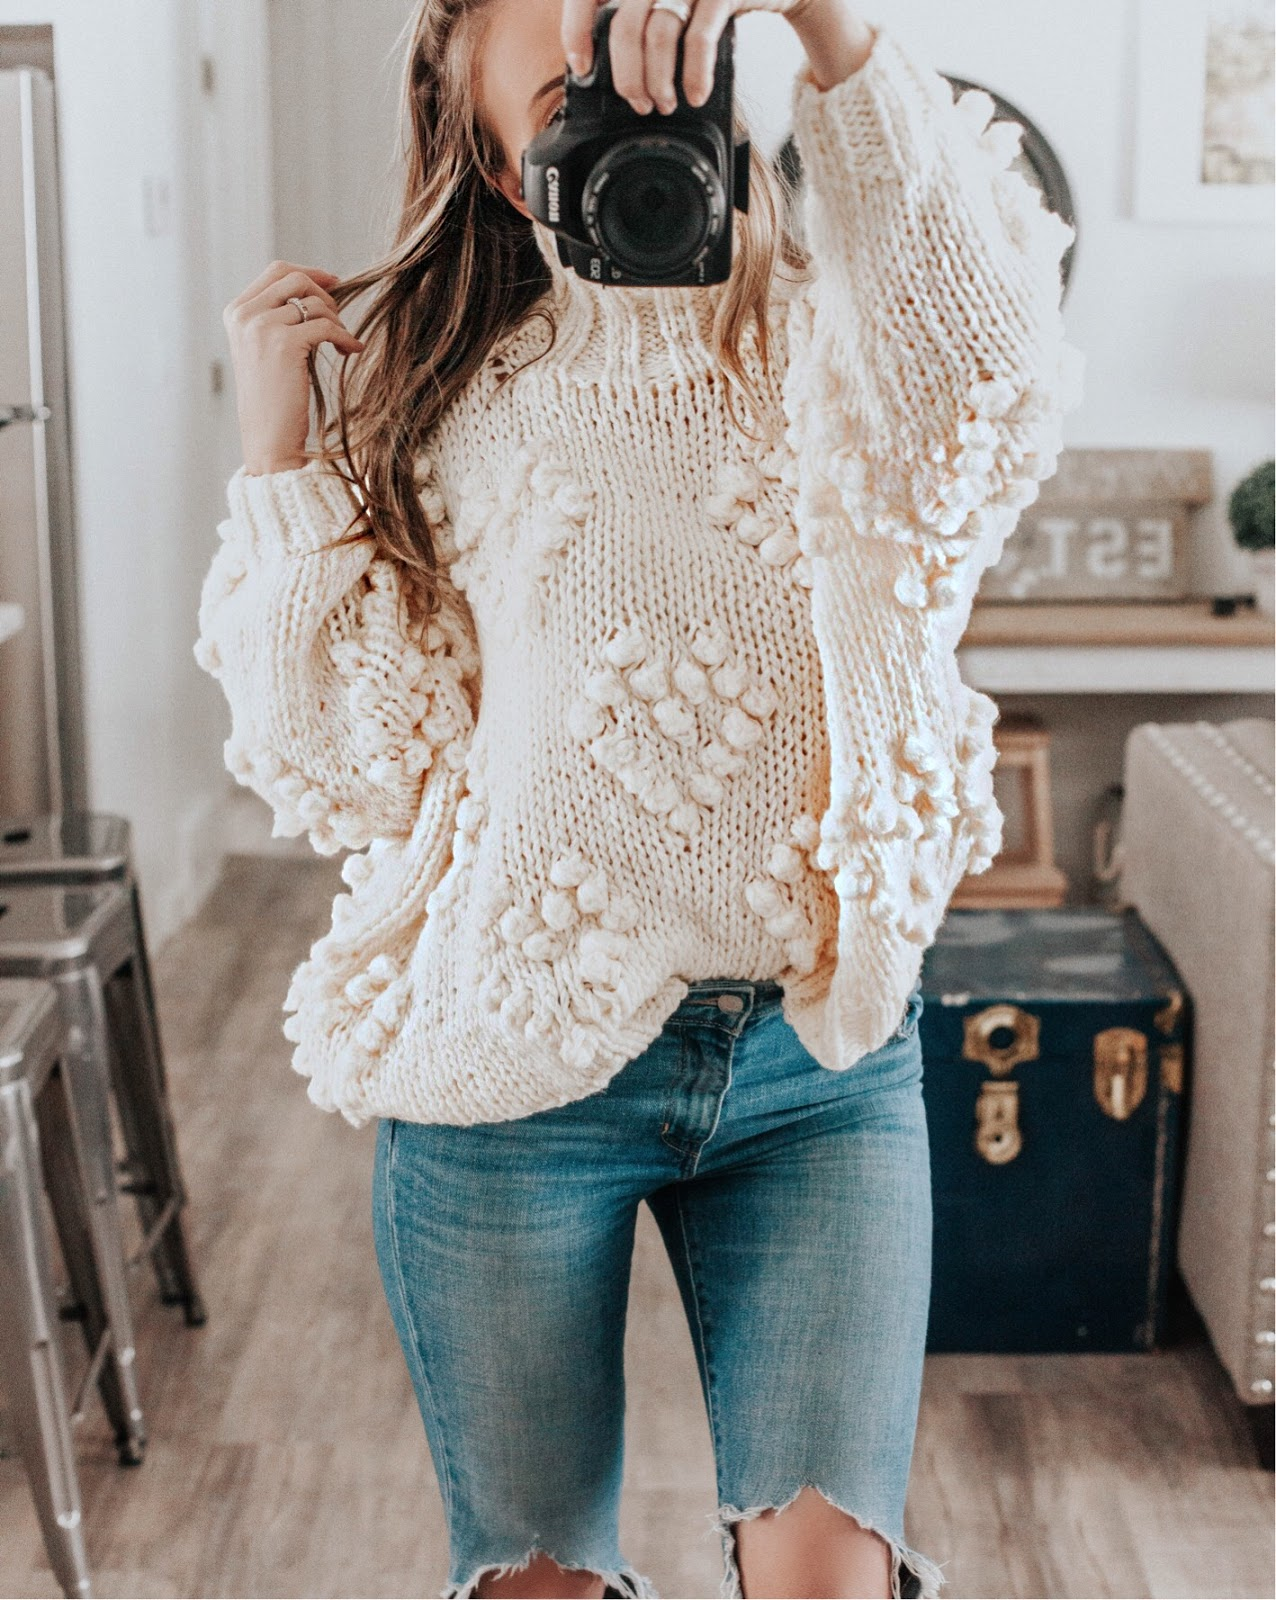 bdfa6735c9 ... favorite Instagram outfits I have been sharing lately. I seem to be  gravitating towards creams, grays, mauves, and lots and lots of denim!